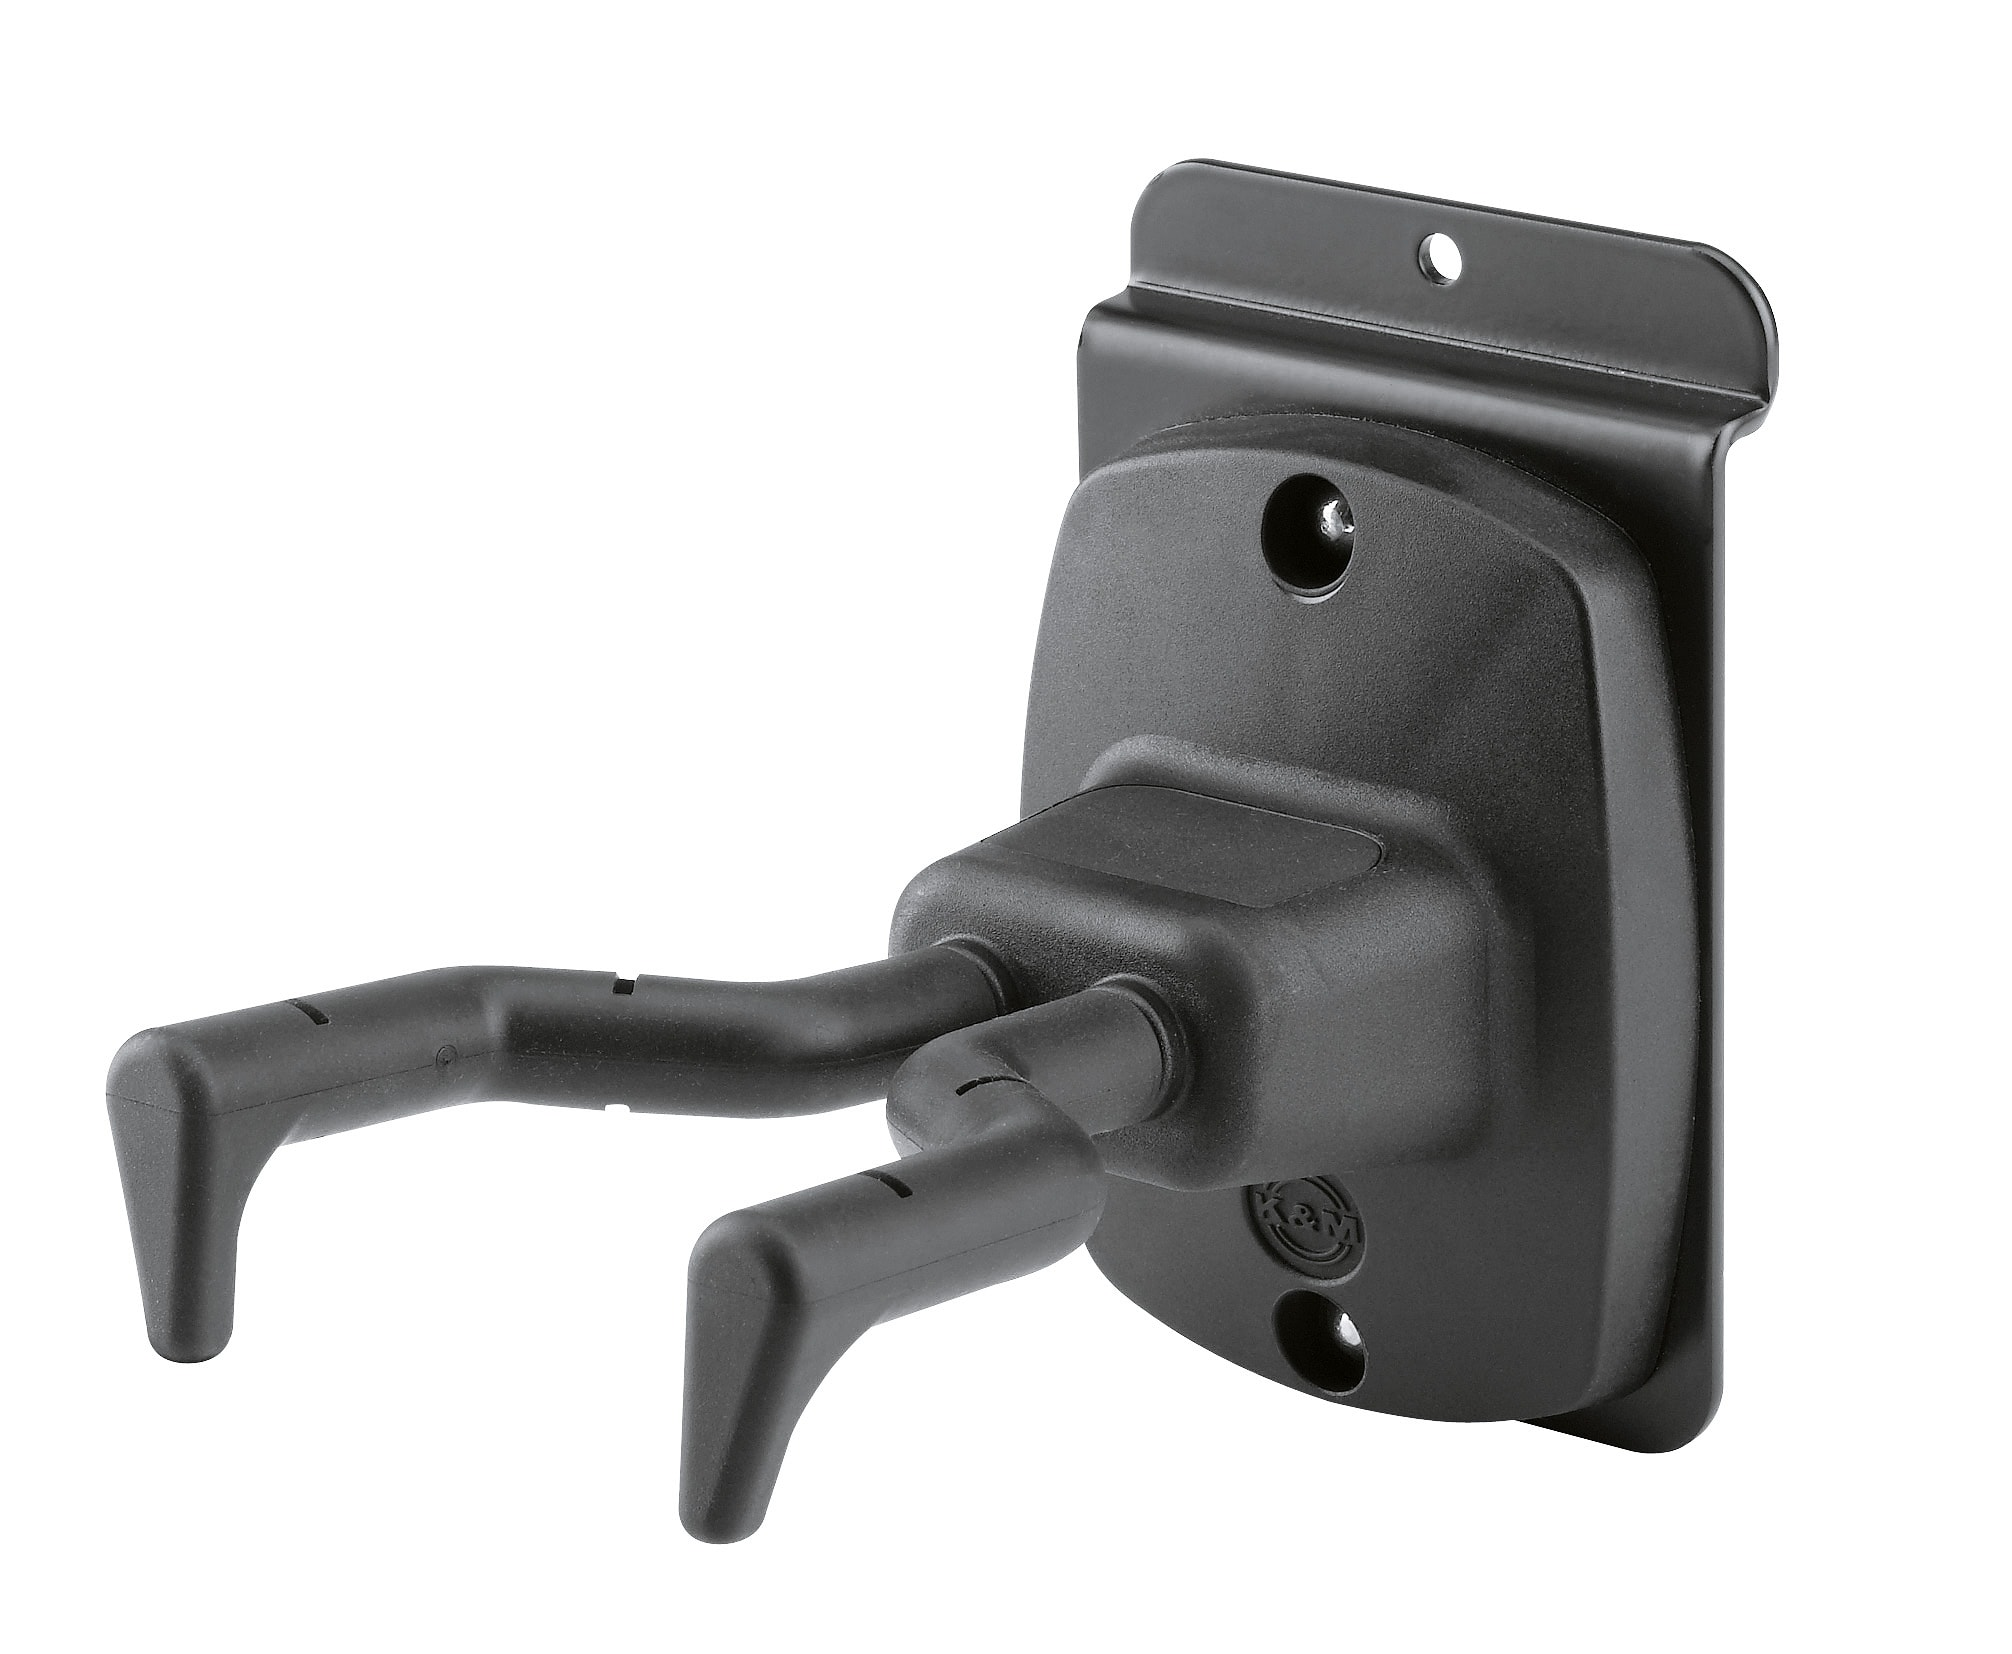 KM44140 - Product holder for guitar